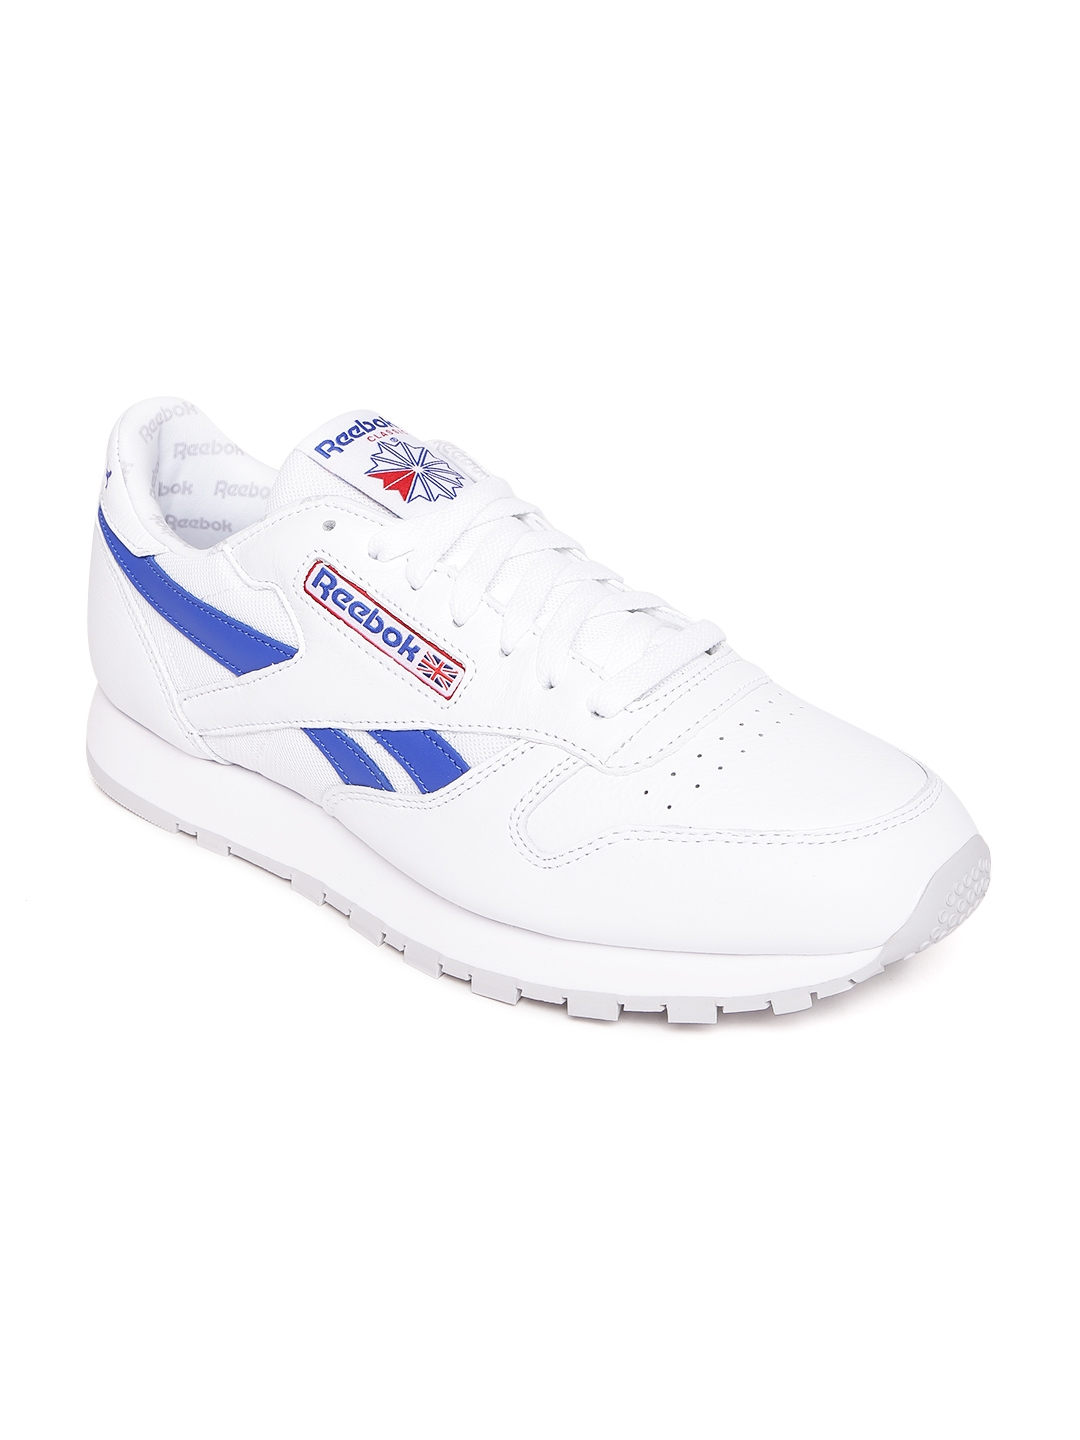 189764356b428 Reebok Classic Men White CL Leather SO Sneakers. Rs. 7999Additional ...